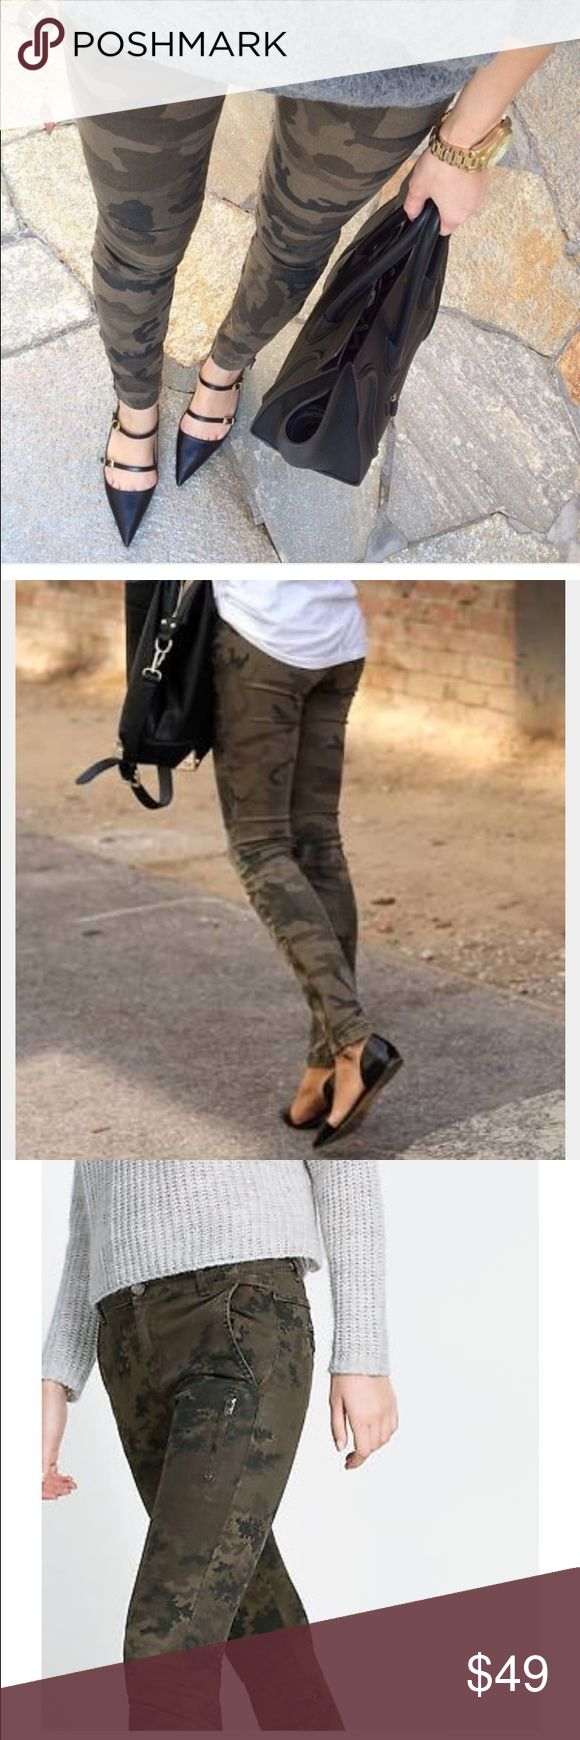 Zara Woman Camouflage jeans Bought this 2-3 seasons ago, still in good condition not fitting me anymore, size is Eur 40, US 8 Zara Jeans Skinny